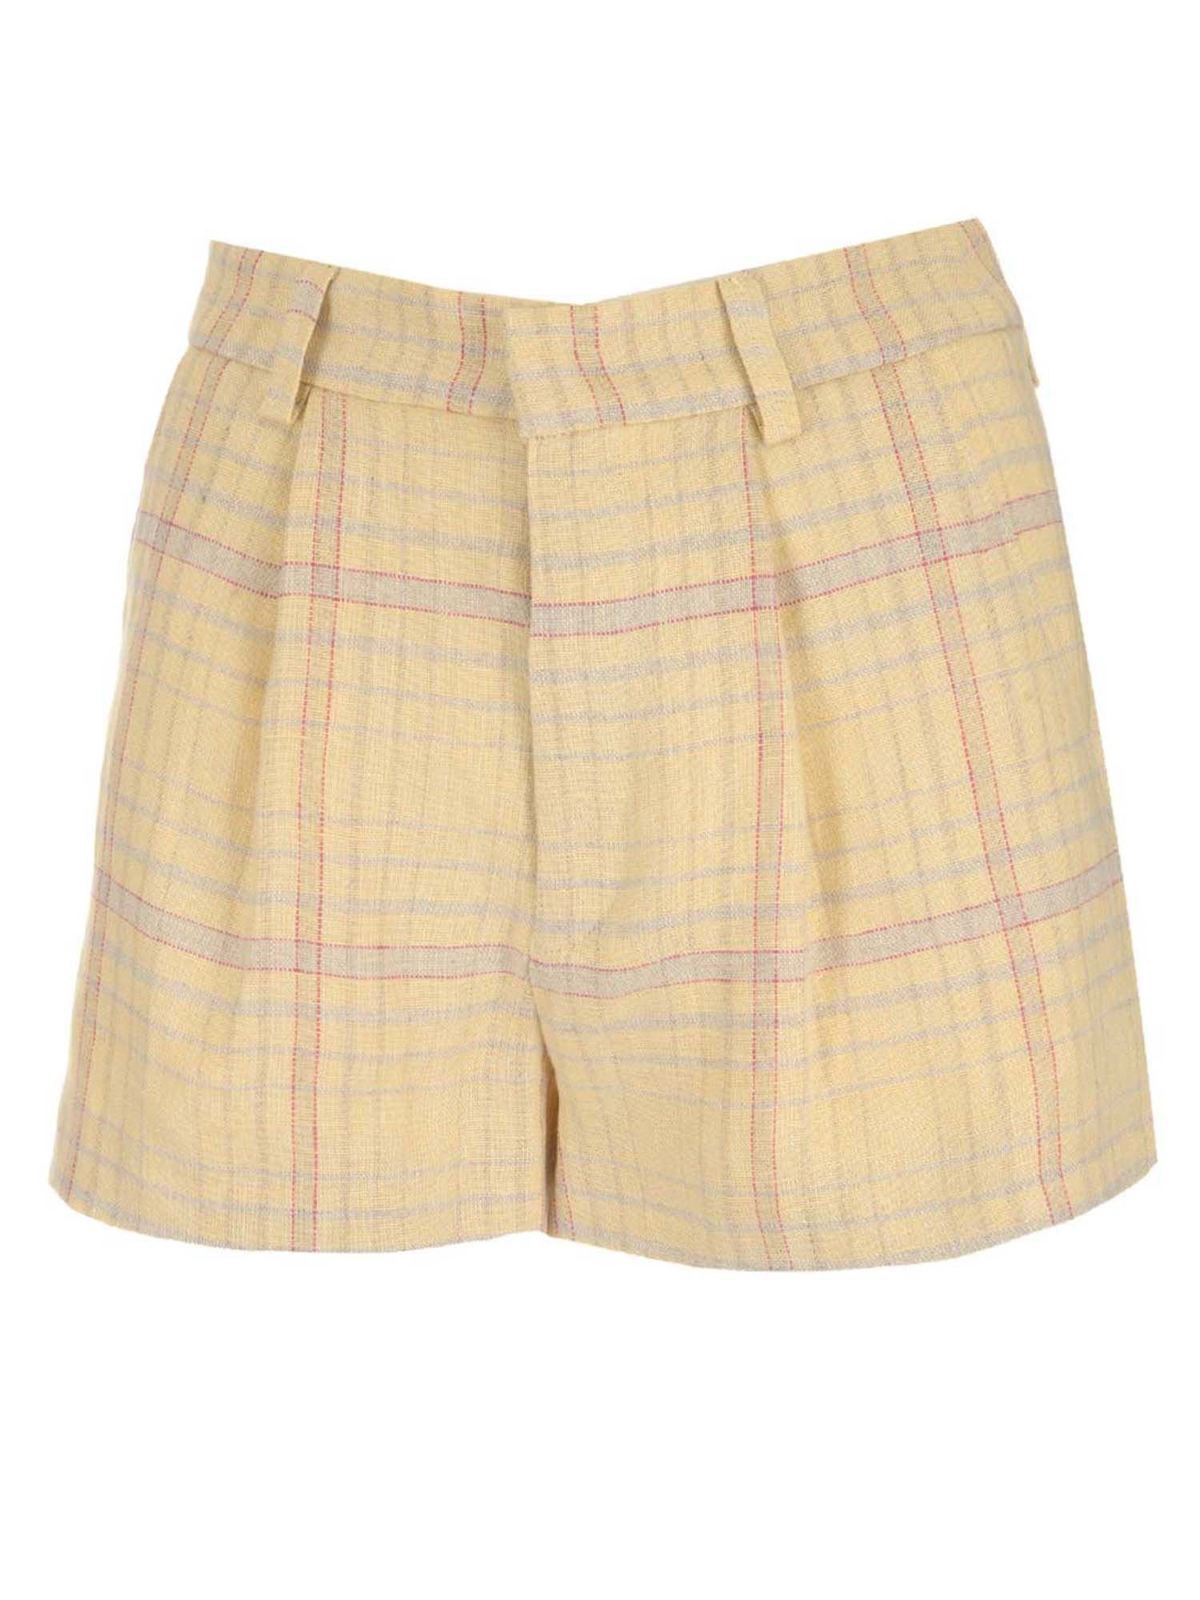 Isabel Marant Étoile ILABOT SHORTS IN YELLOW